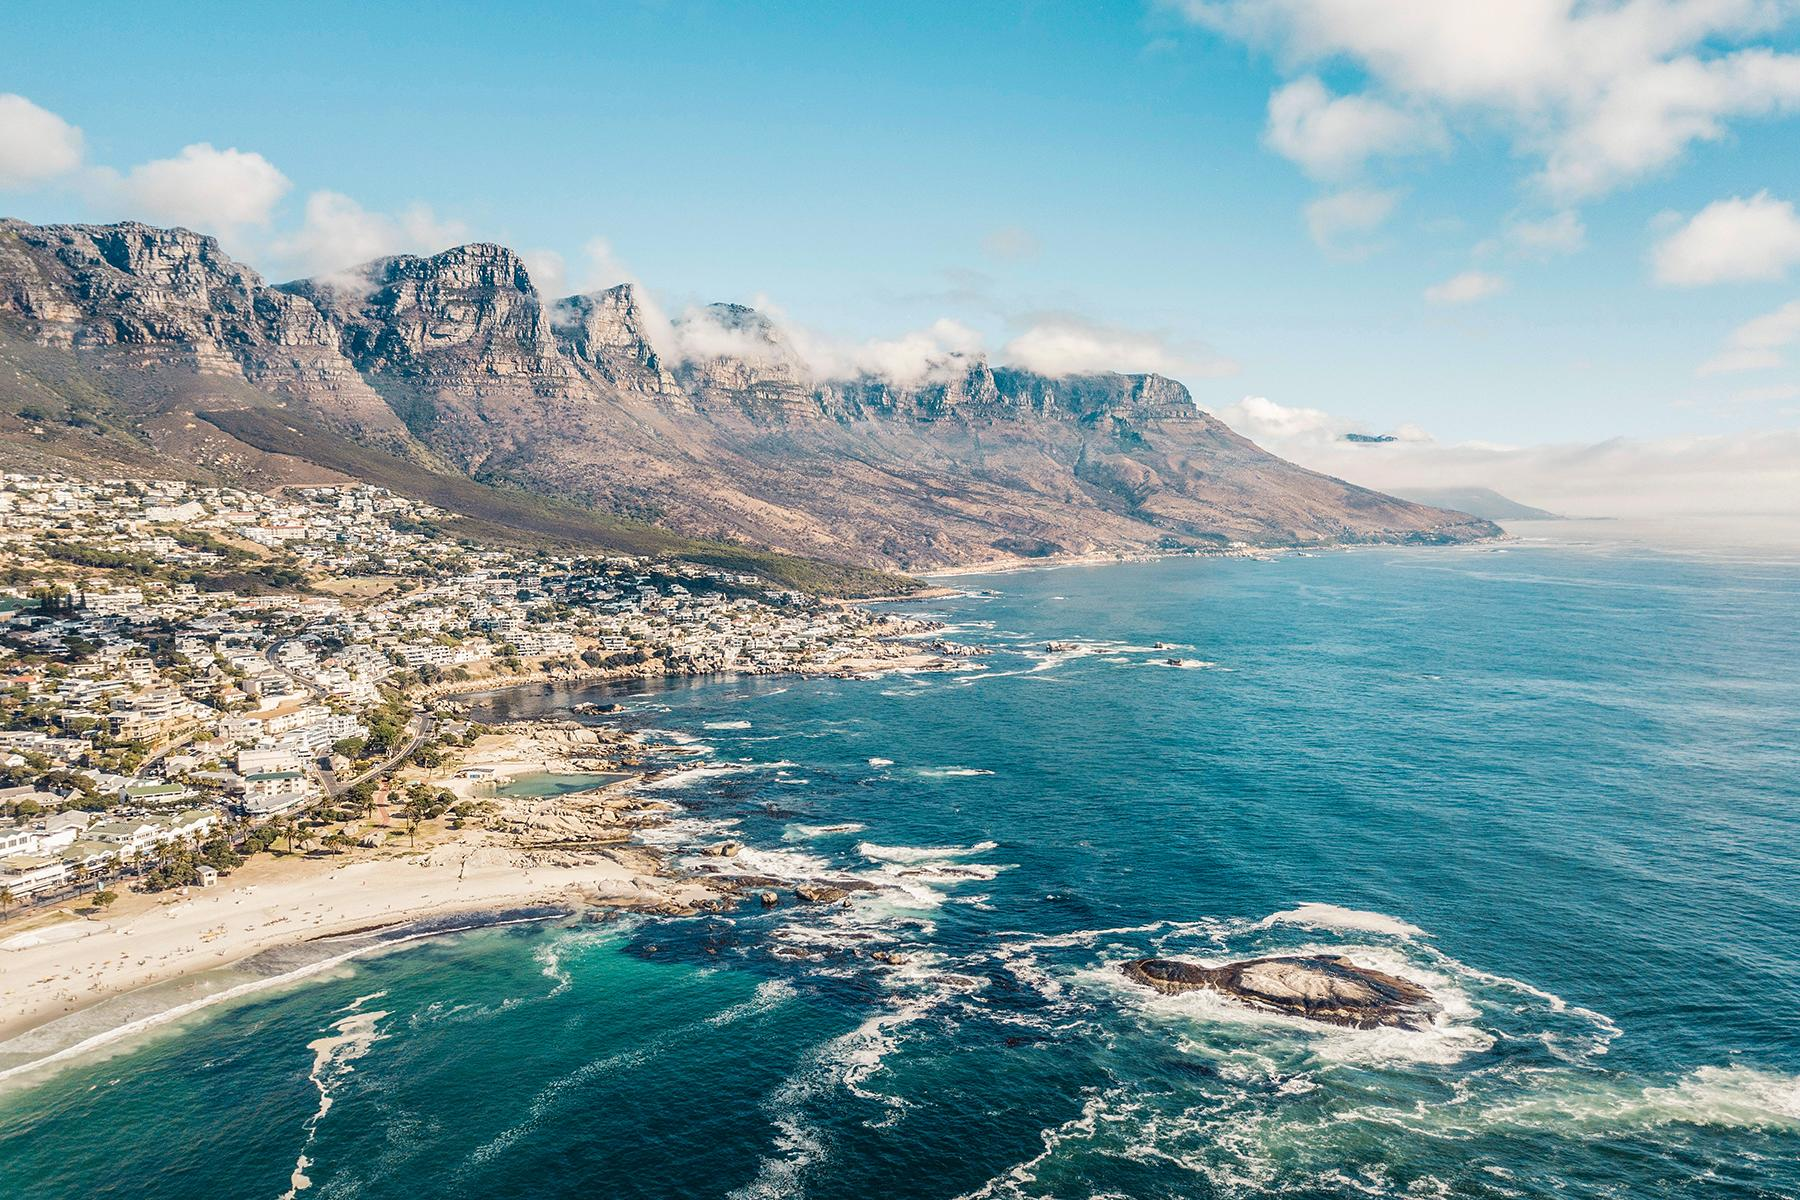 04_BeachHoneymoon__CapeTown_4.) john-o-nolan-rqrv0bbzMLg-unsplash